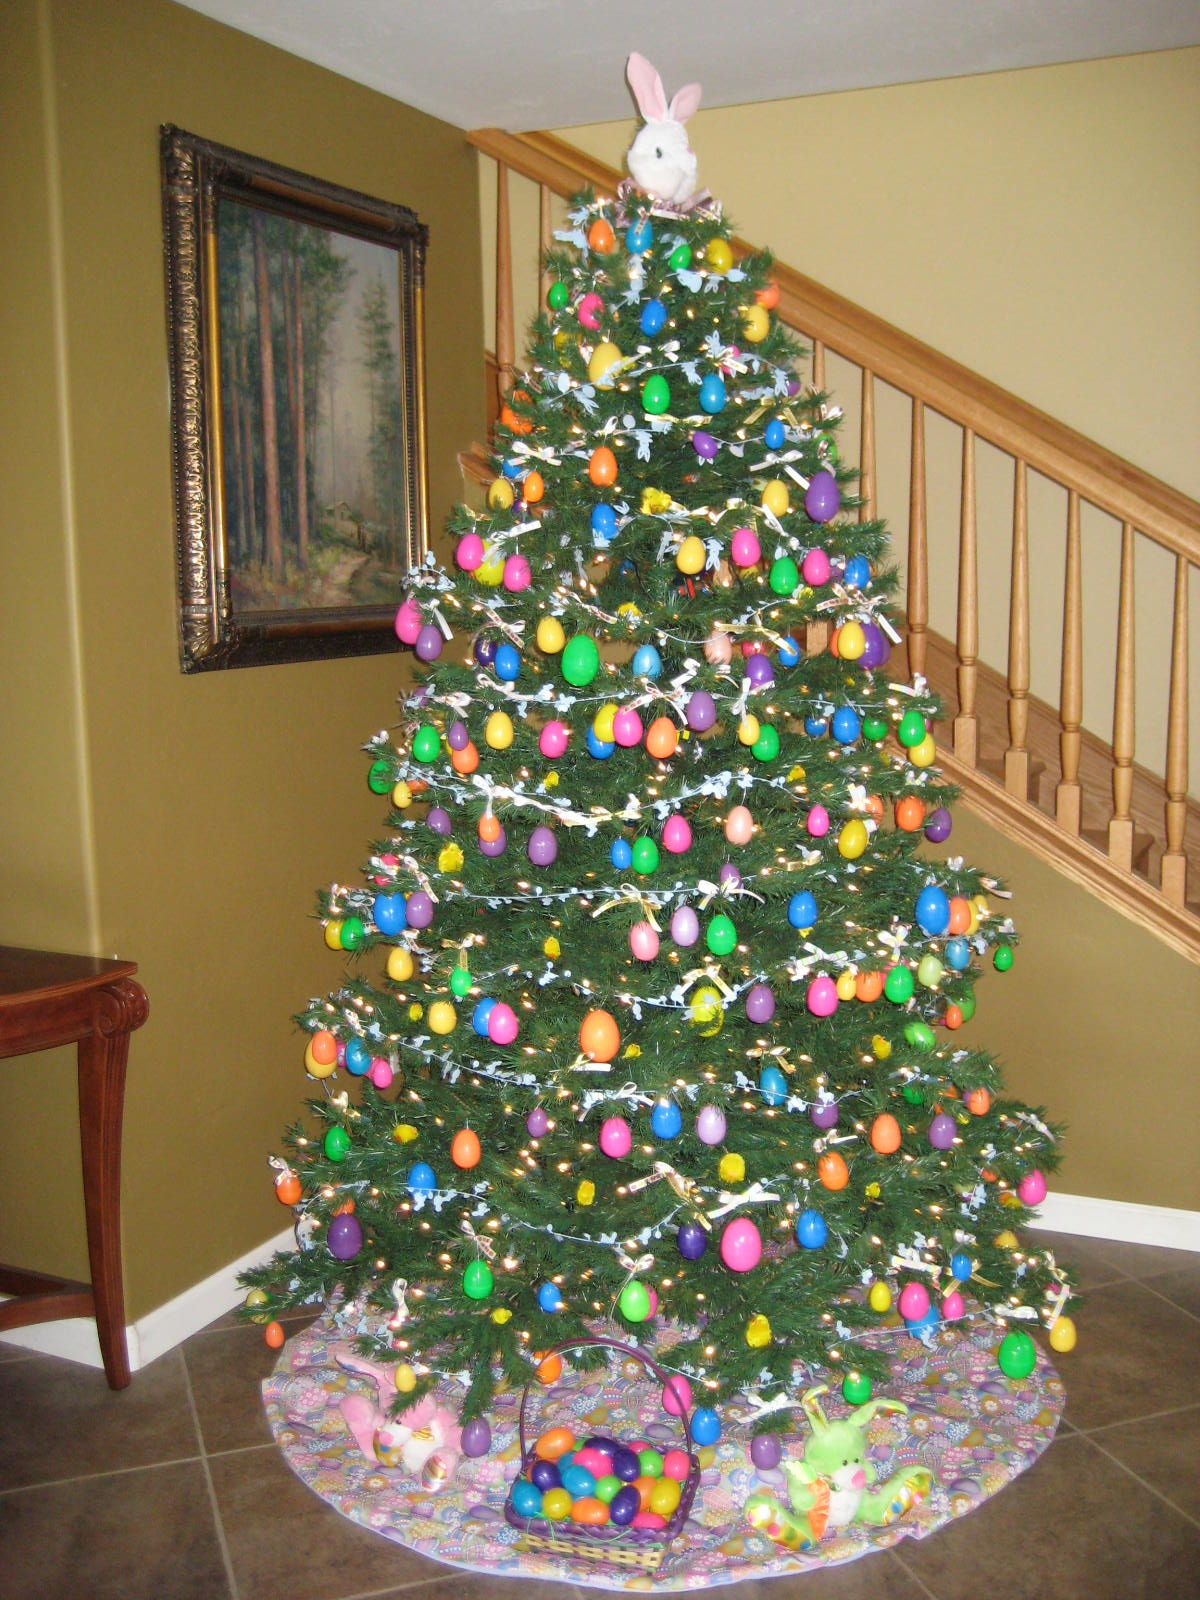 Decorate Christmas Tree For Easter : Easter tree